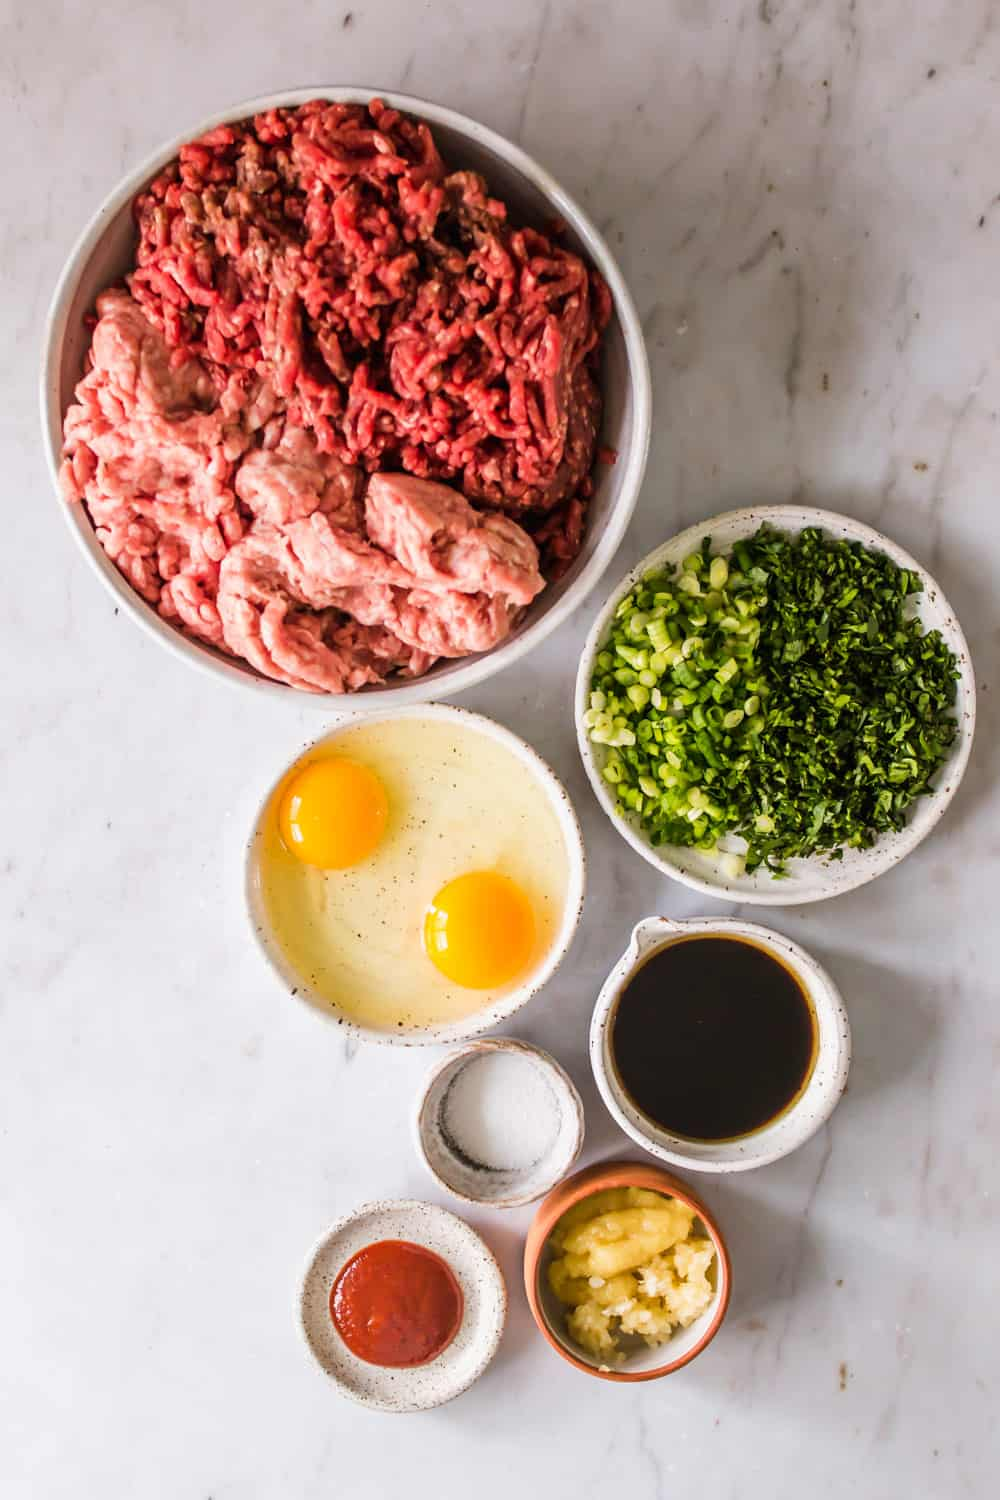 white bowls filled with ground meat, eggs, green herbs, sauce, and ginger